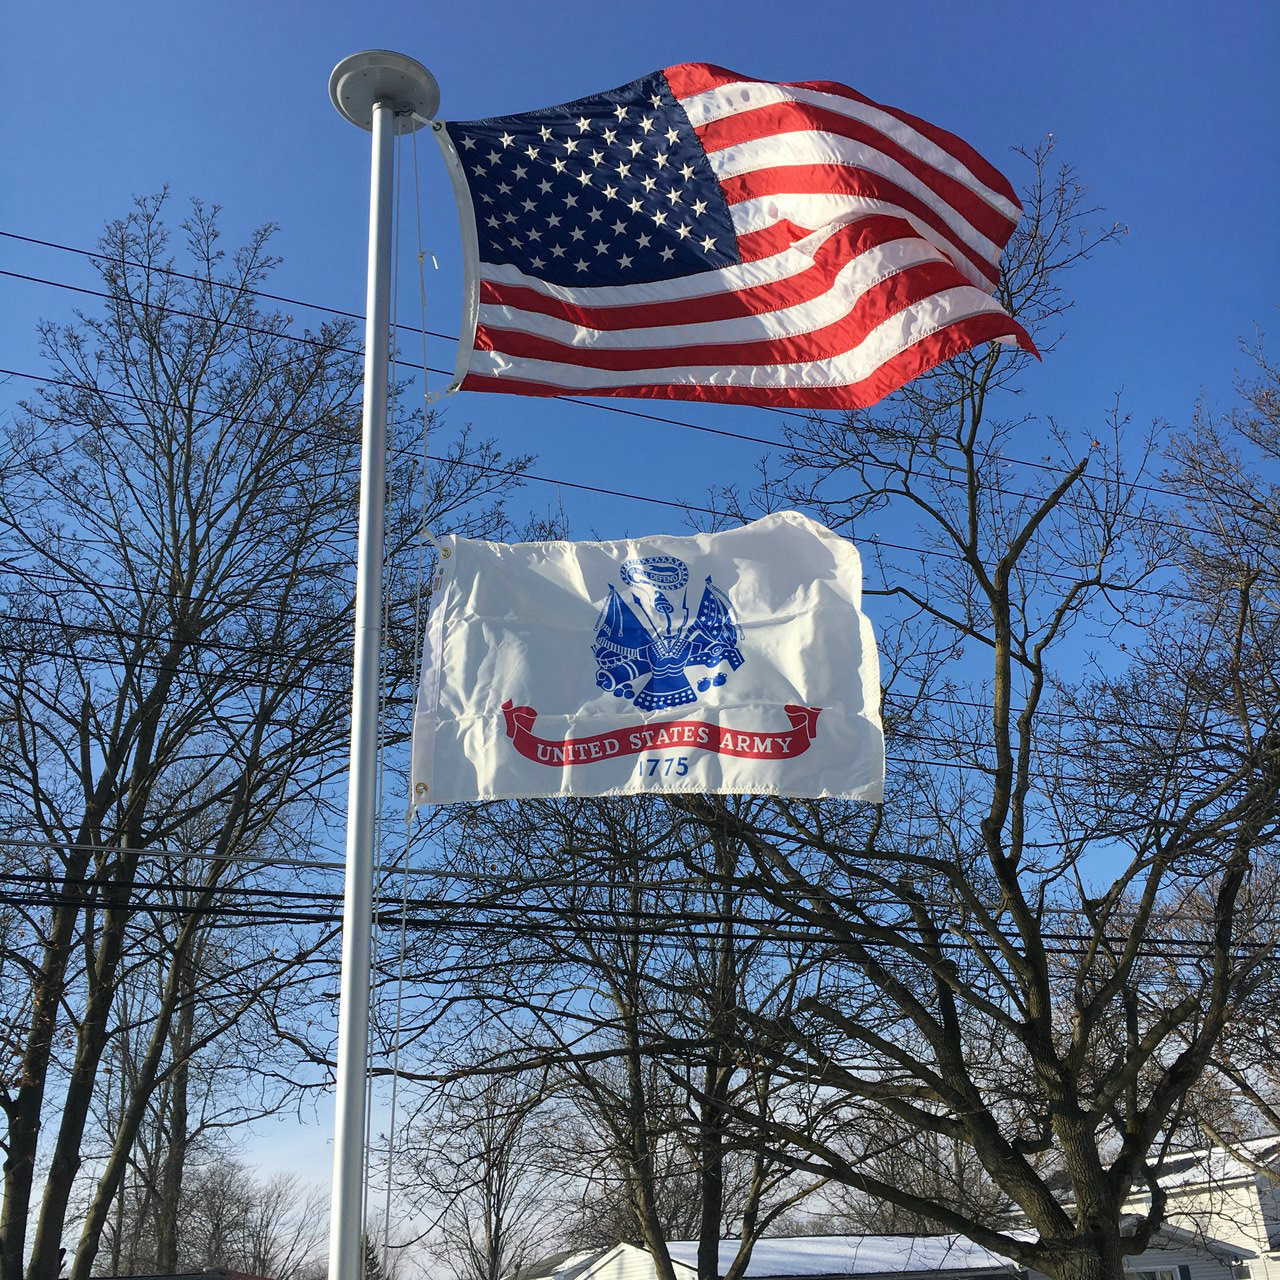 fdee6700 United States Army Flag flying proudly. 2'x3' under a 3'x5